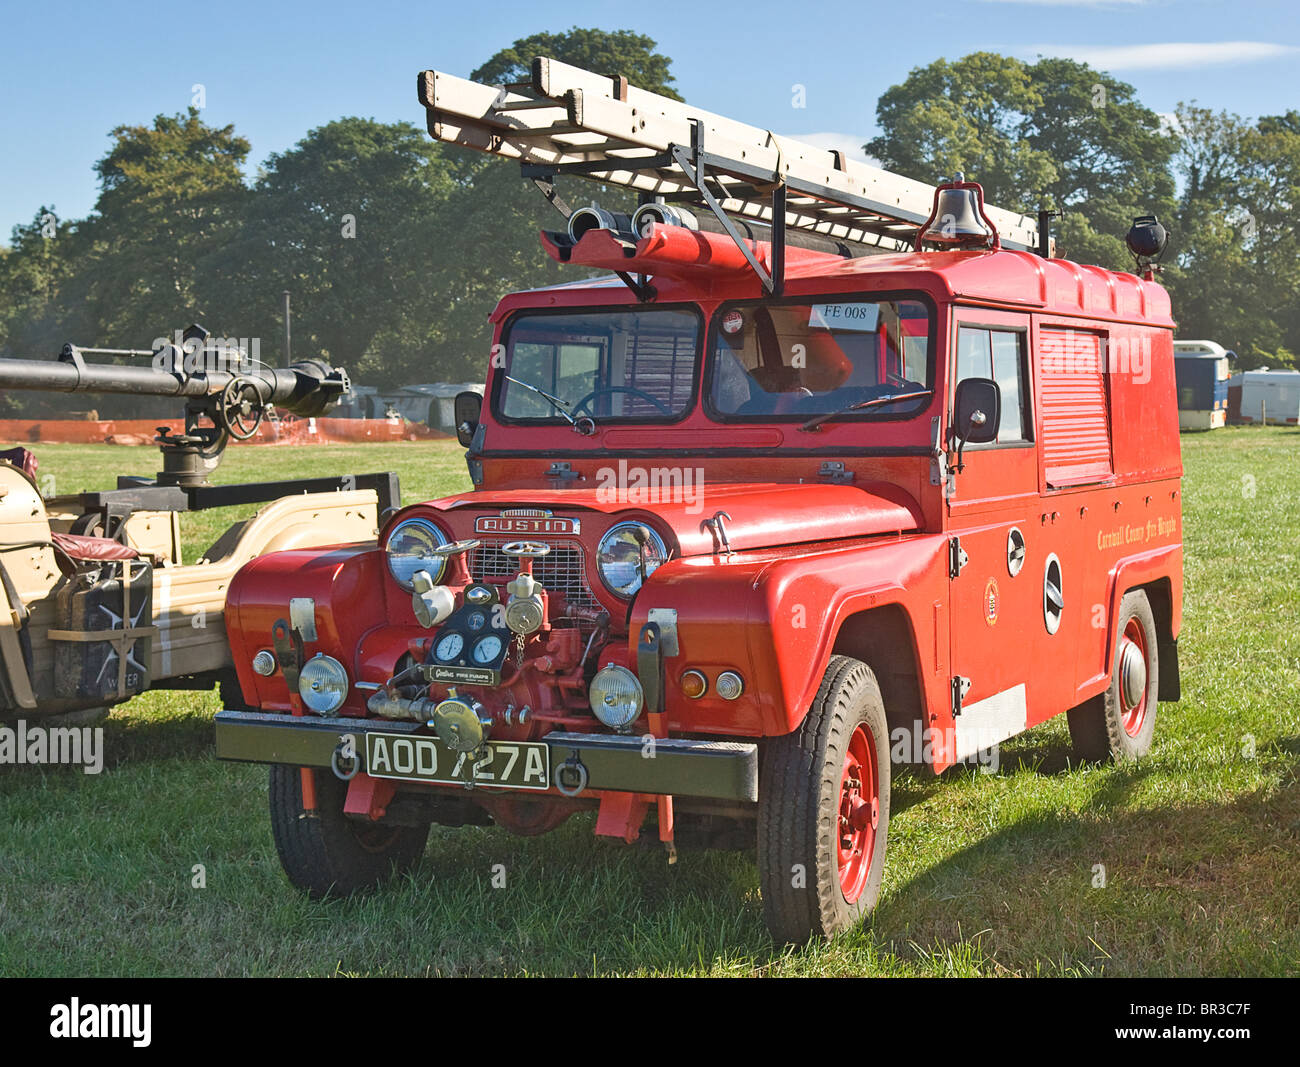 1964 Austin Gipsy Fire Appliance photographed at a rally in North Yorkshire. - Stock Image